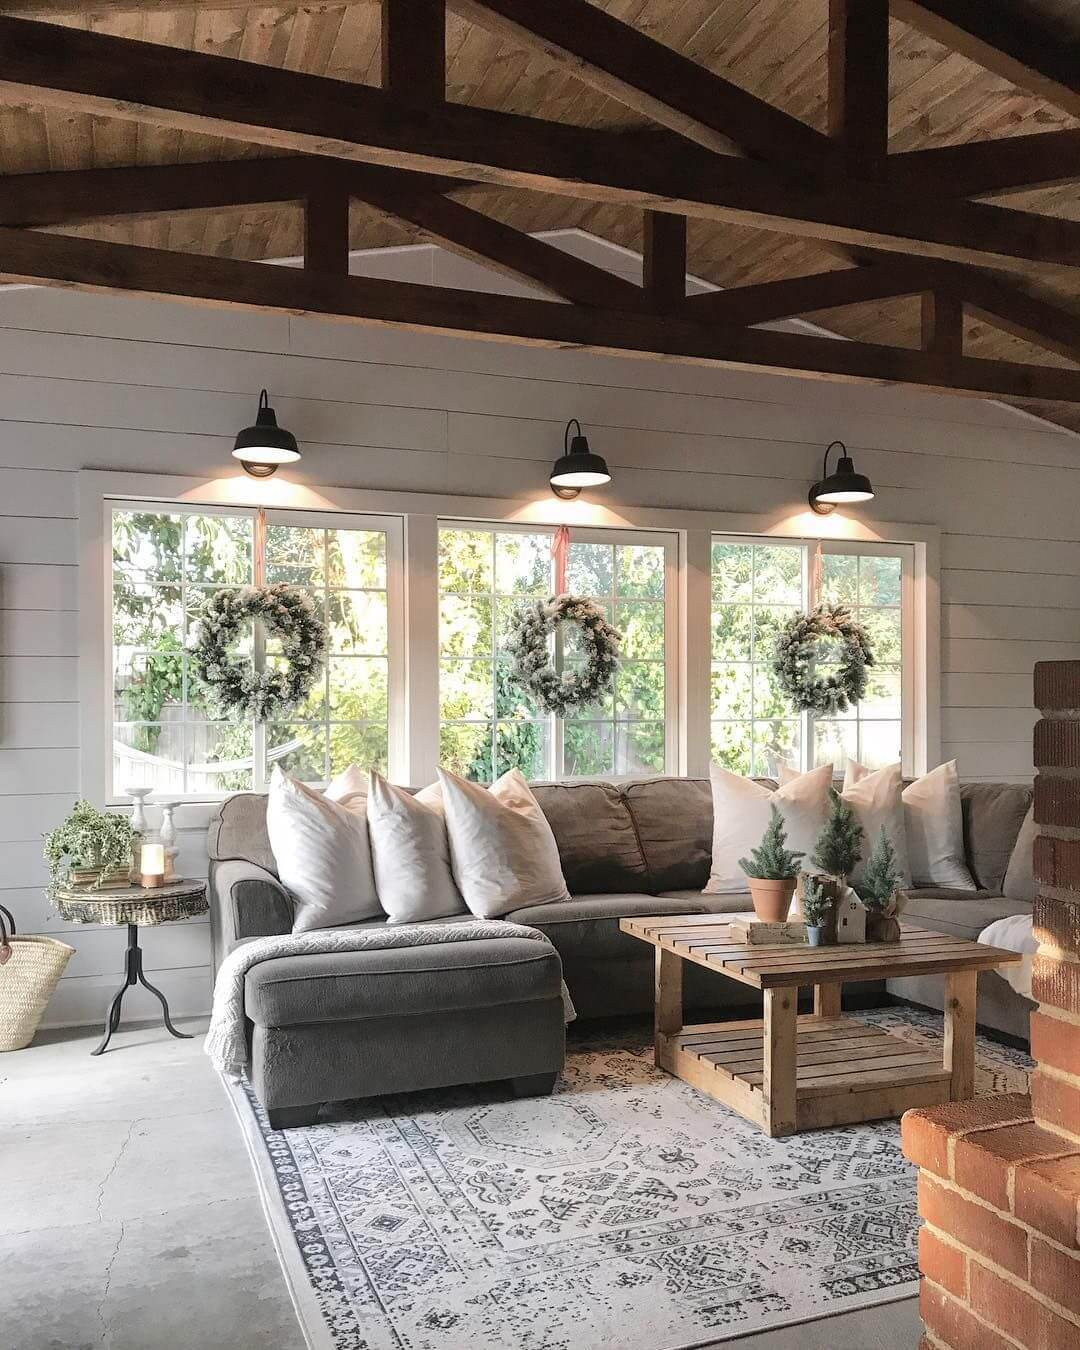 40 Best Cozy Farmhouse Living Room Lighting Lamps Decor: 35+ Best Farmhouse Interior Ideas And Designs For 2020